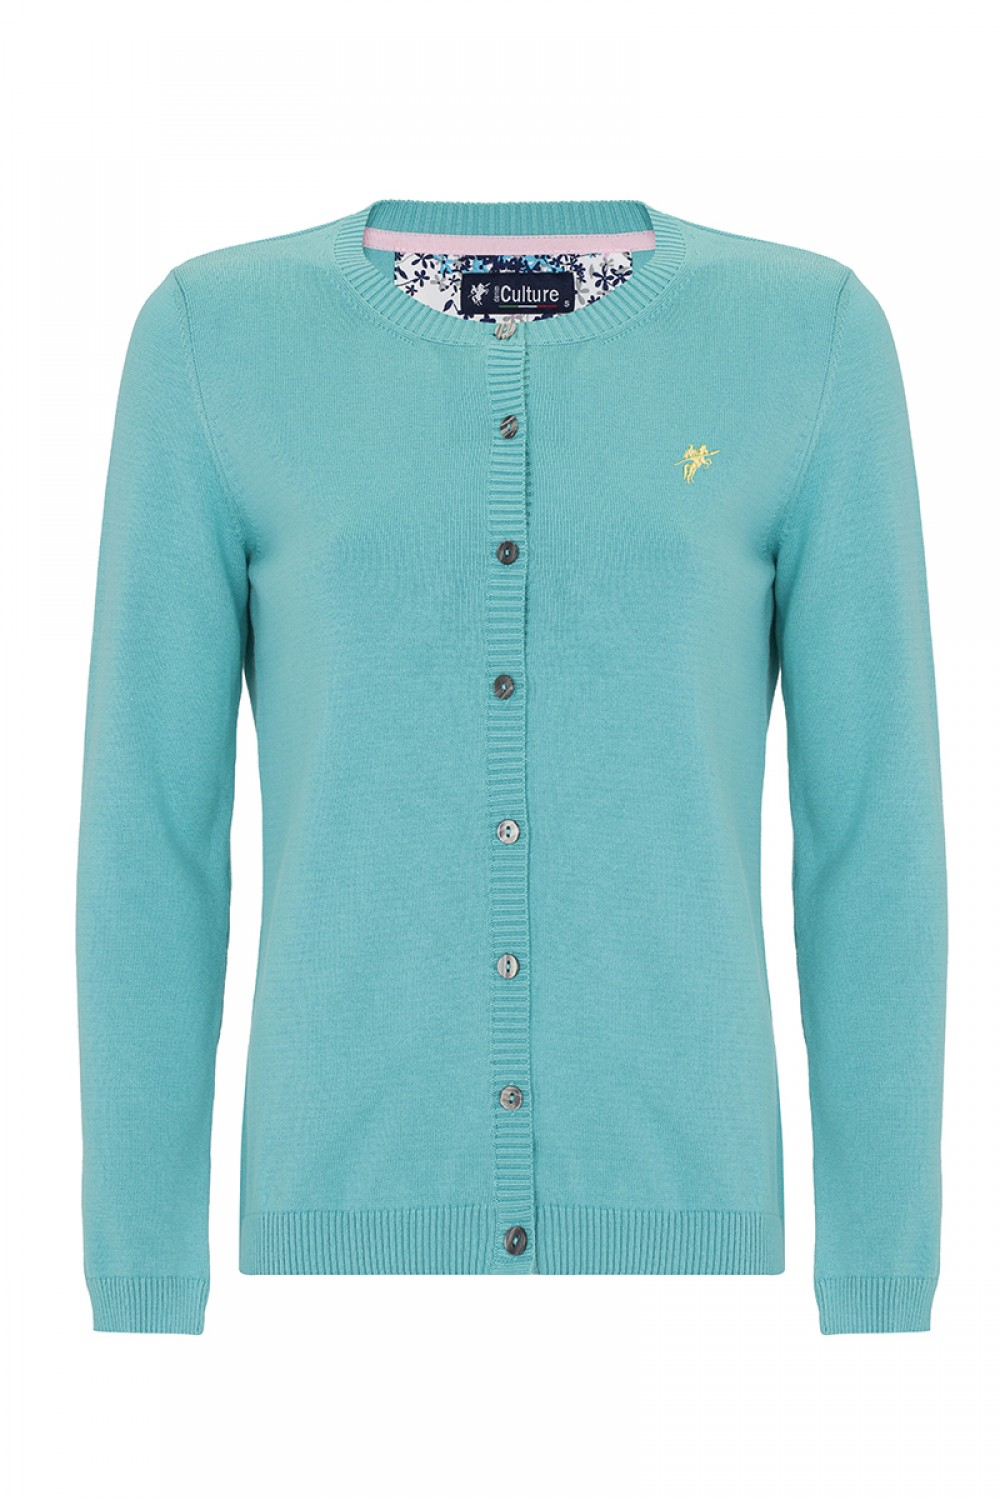 Women's Cardigan Button Crew Neck Mint